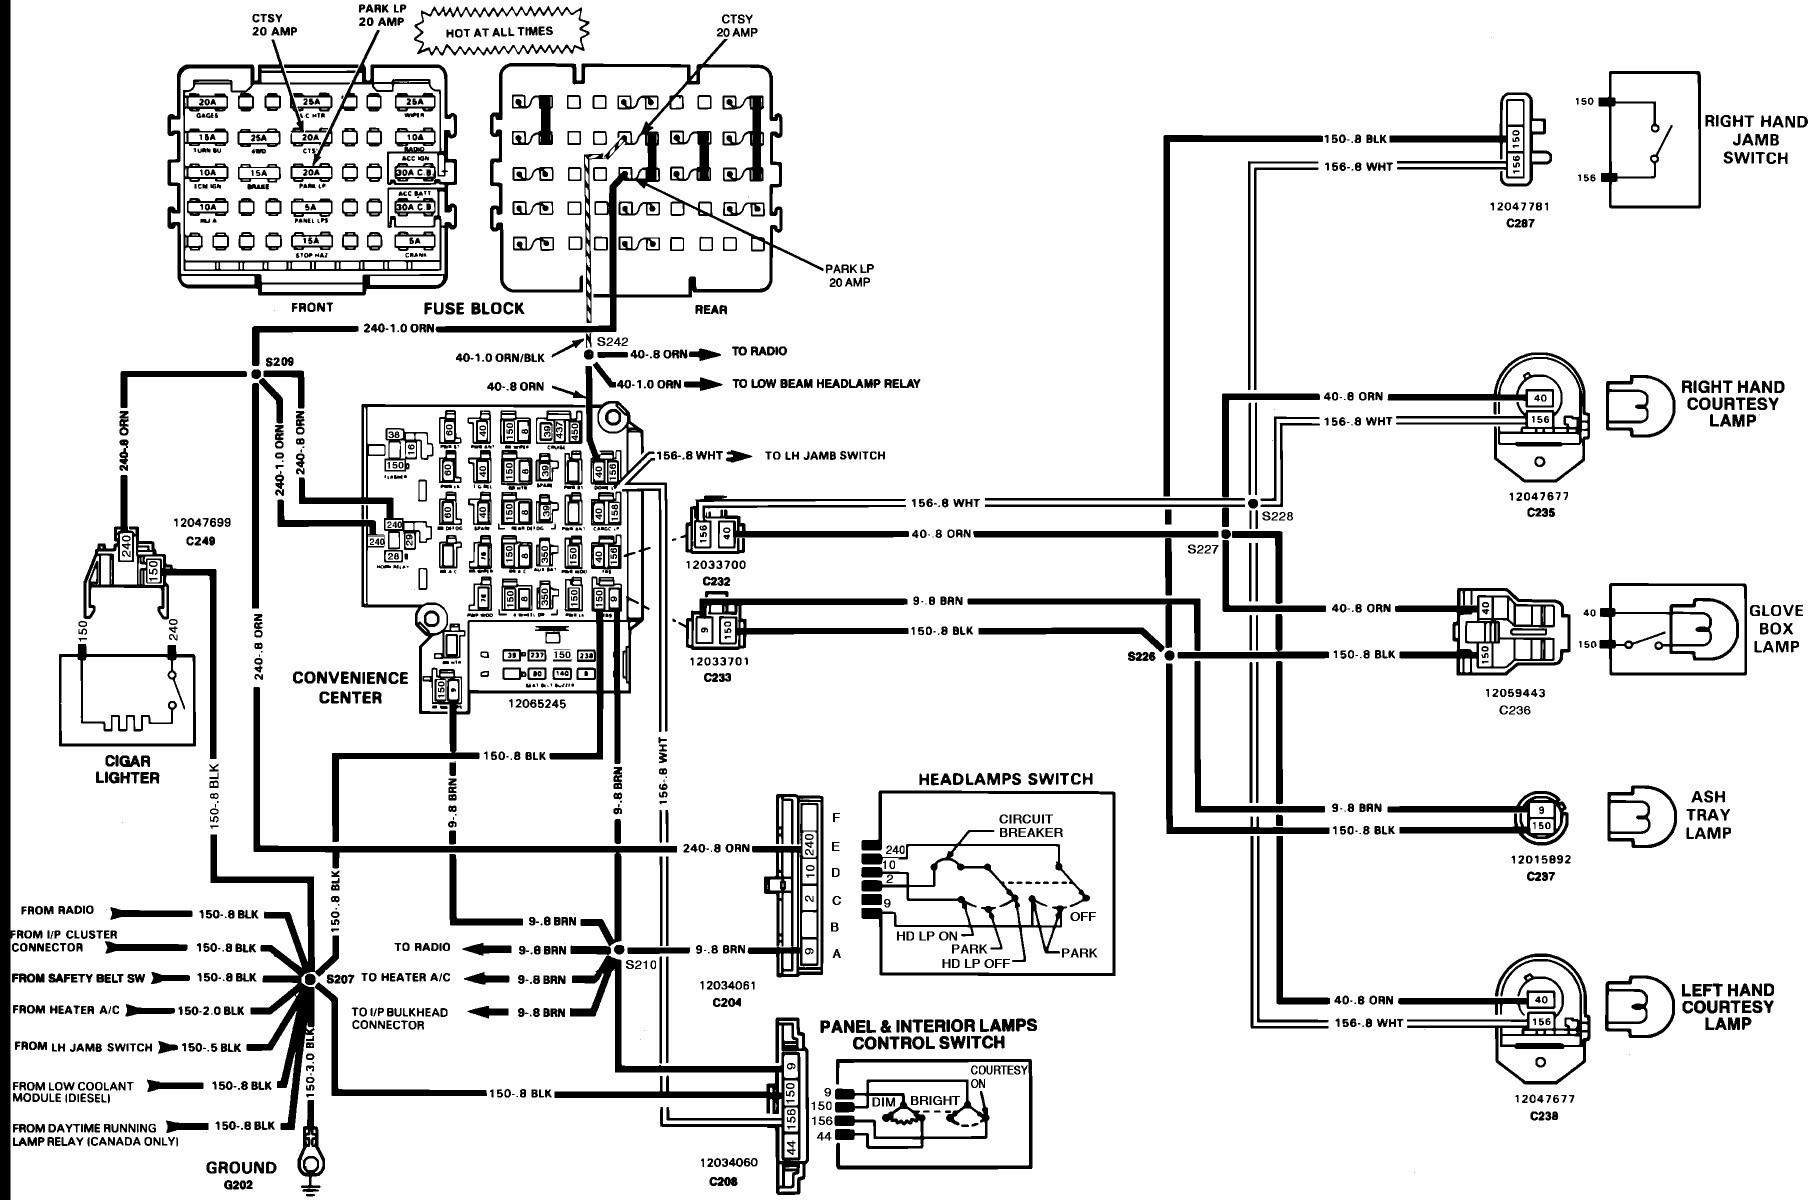 Wondrous Mopar Alternator Wiring Diagram Wiring Library Wiring Digital Resources Cettecompassionincorg